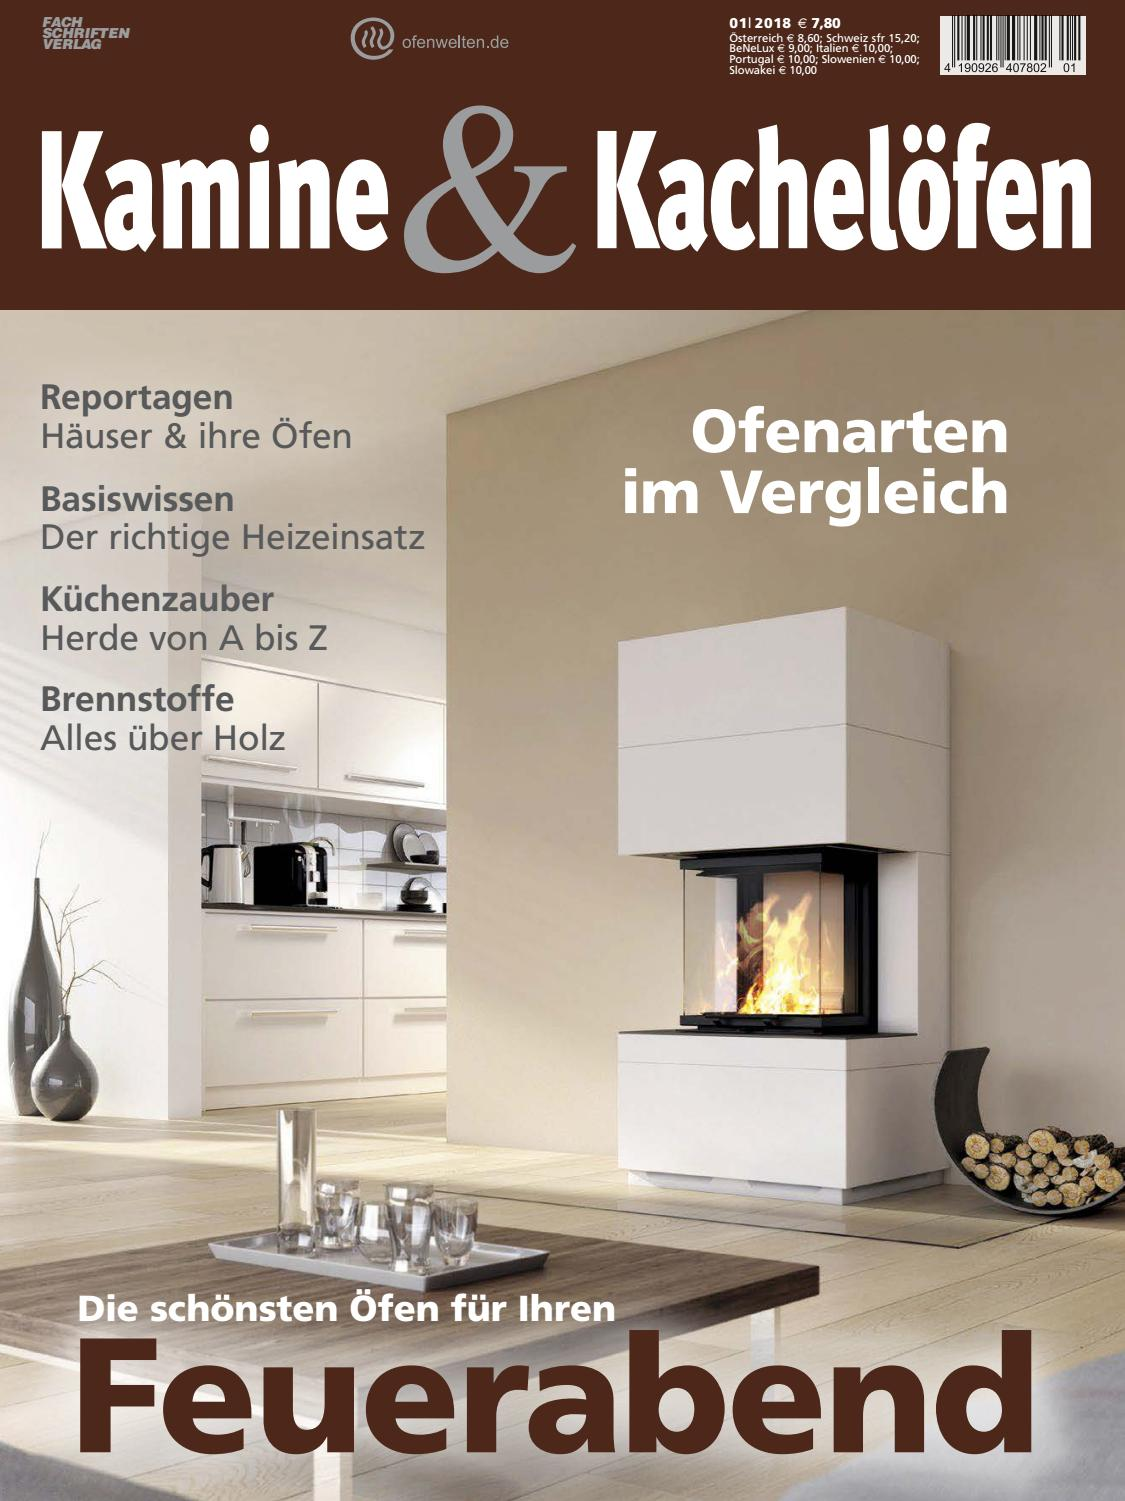 Kaminofen Red Dot Design Kamine Kachelöfen 2018